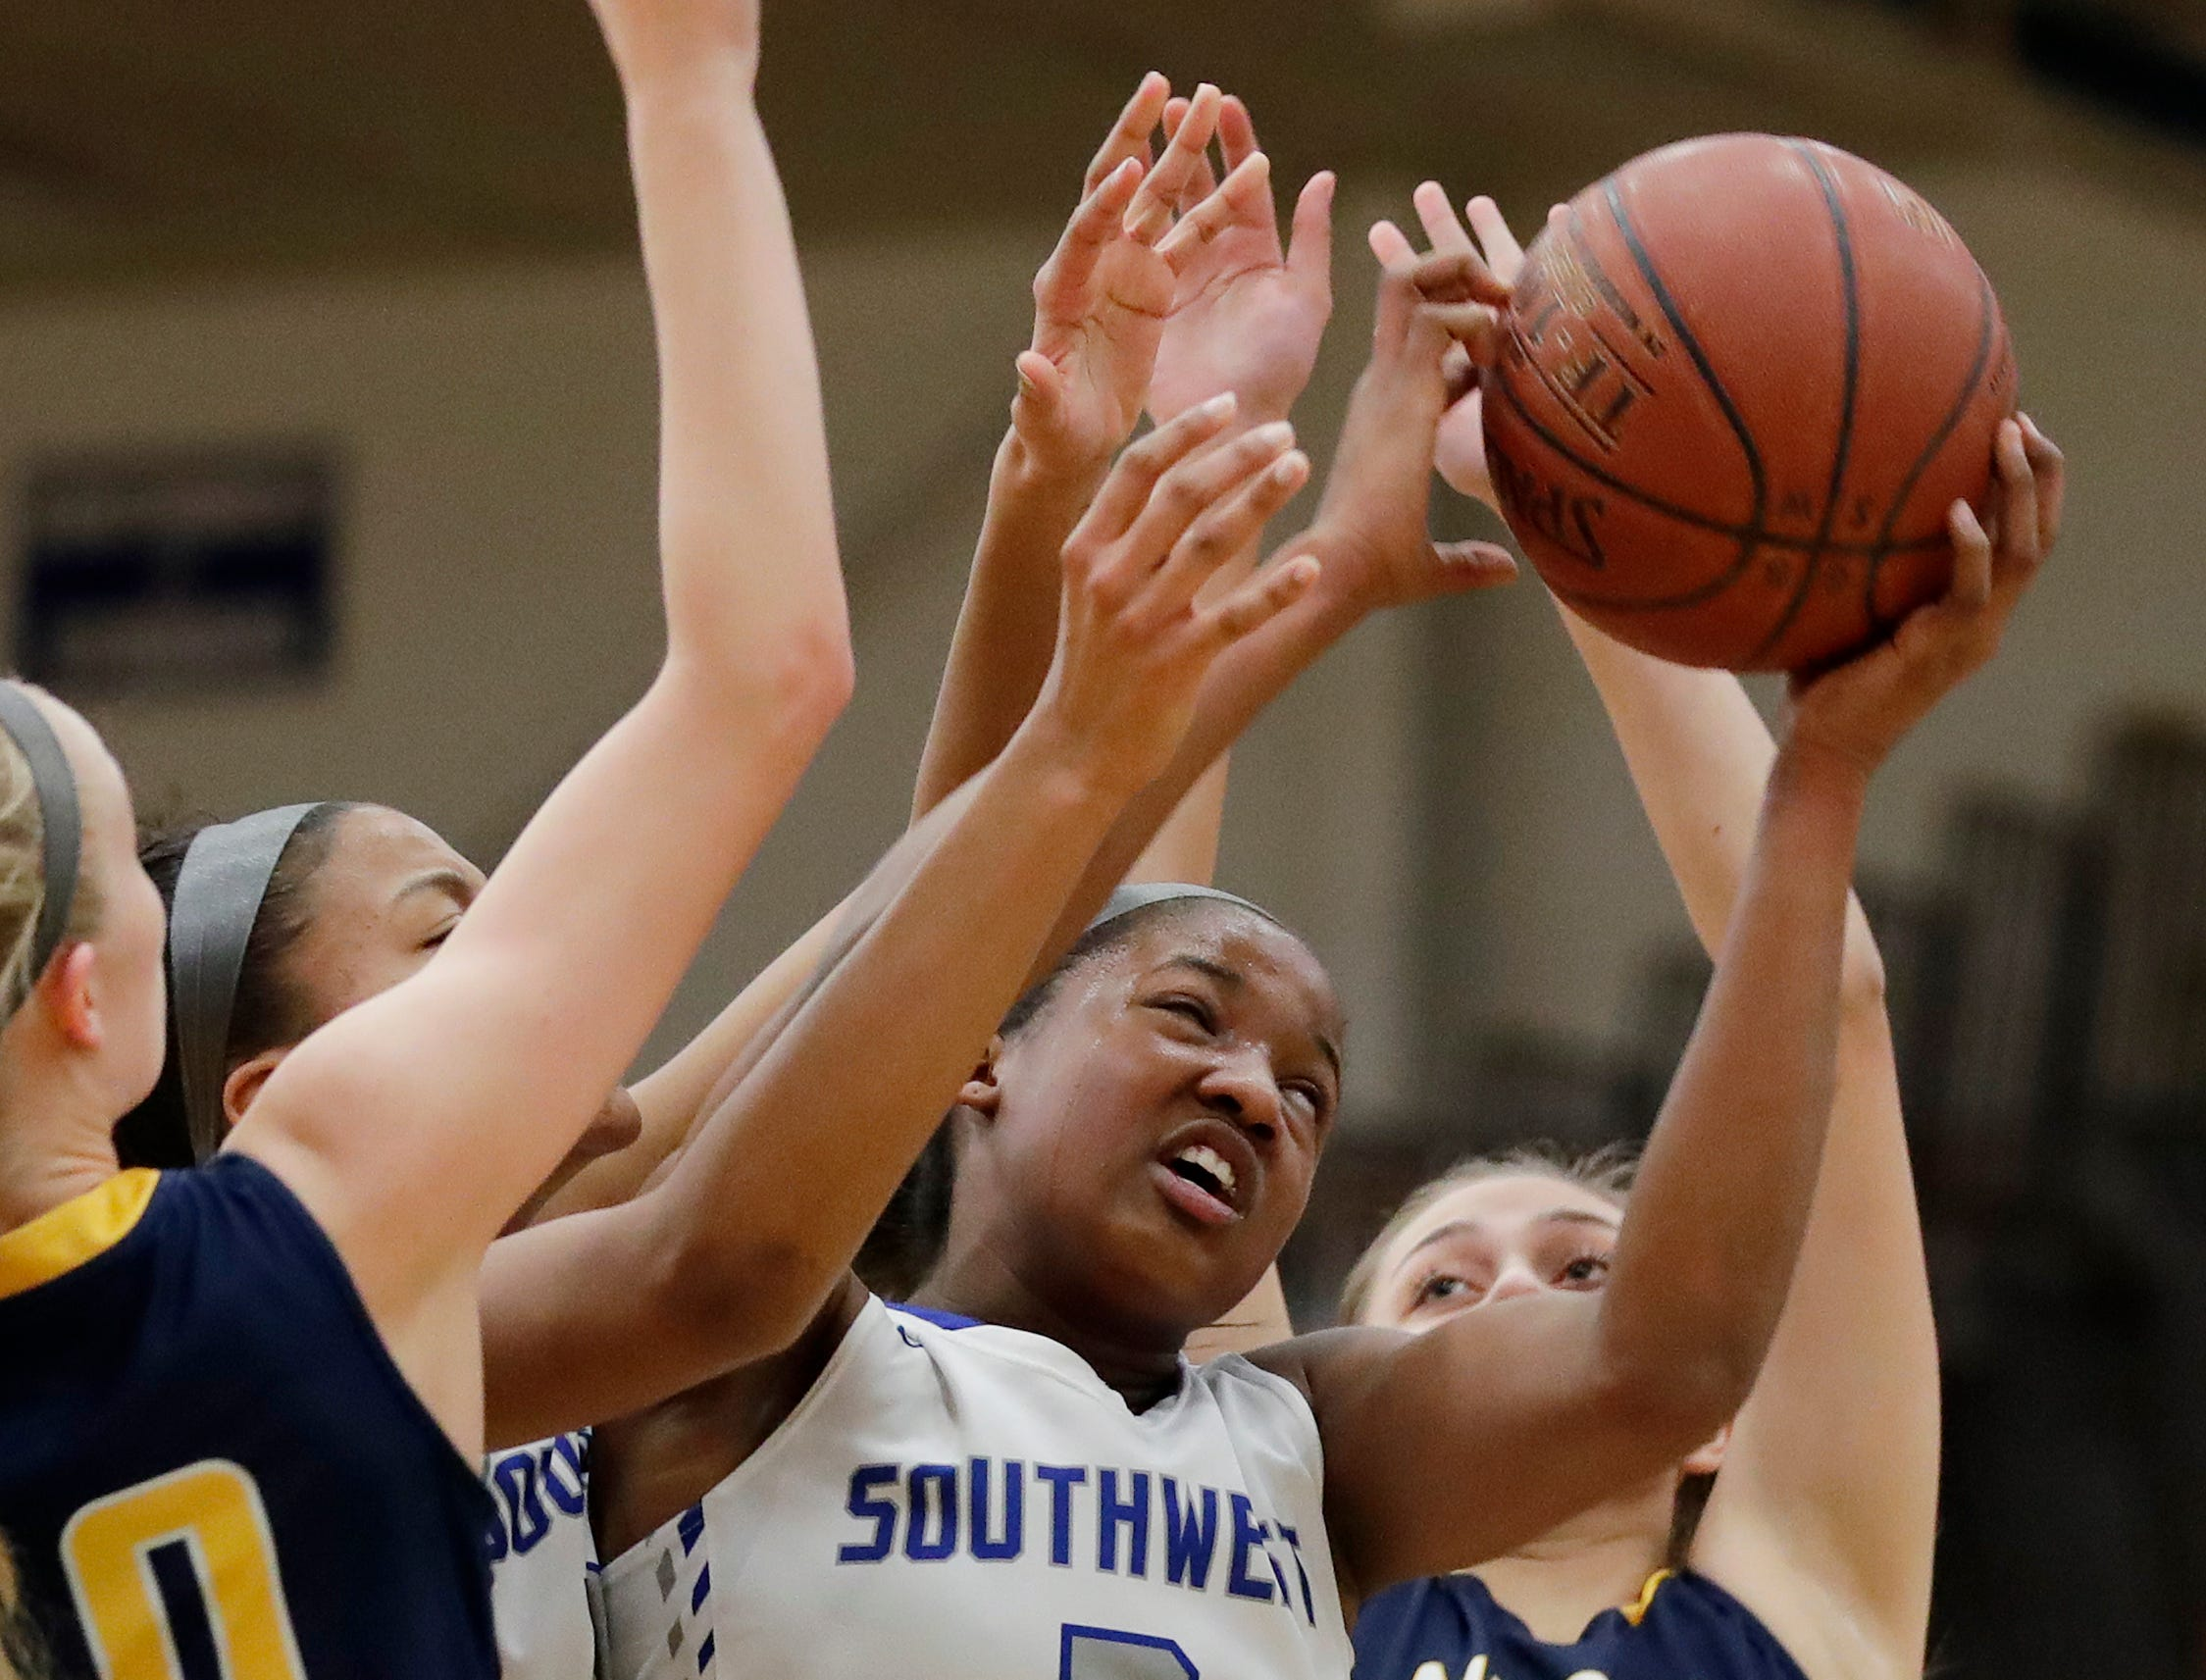 Green Bay Southwest's Jaddan Simmons (2) grabs a rebound against Sheboygan North in a girls basketball game at Southwest High School on Tuesday, February 5, 2019 in Green Bay, Wis.